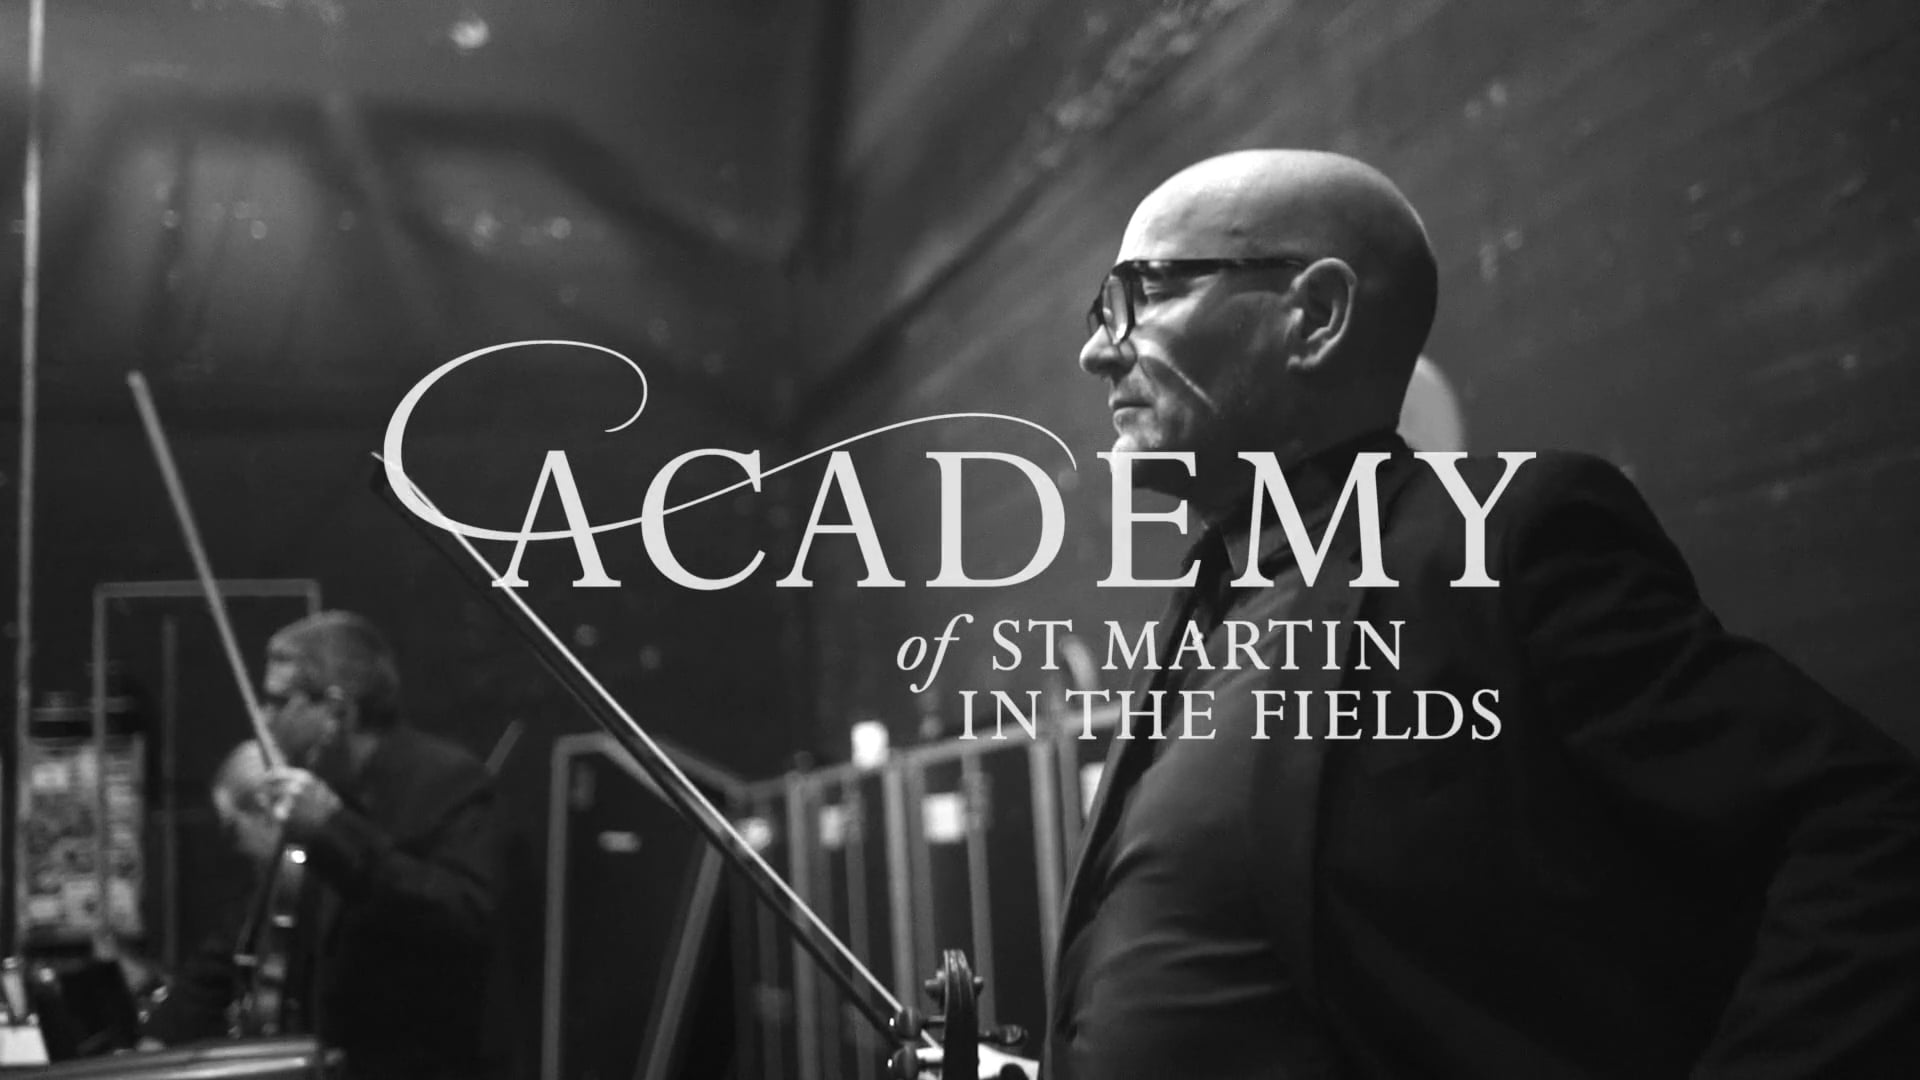 Academy of St Martin in the Fields Orchestra